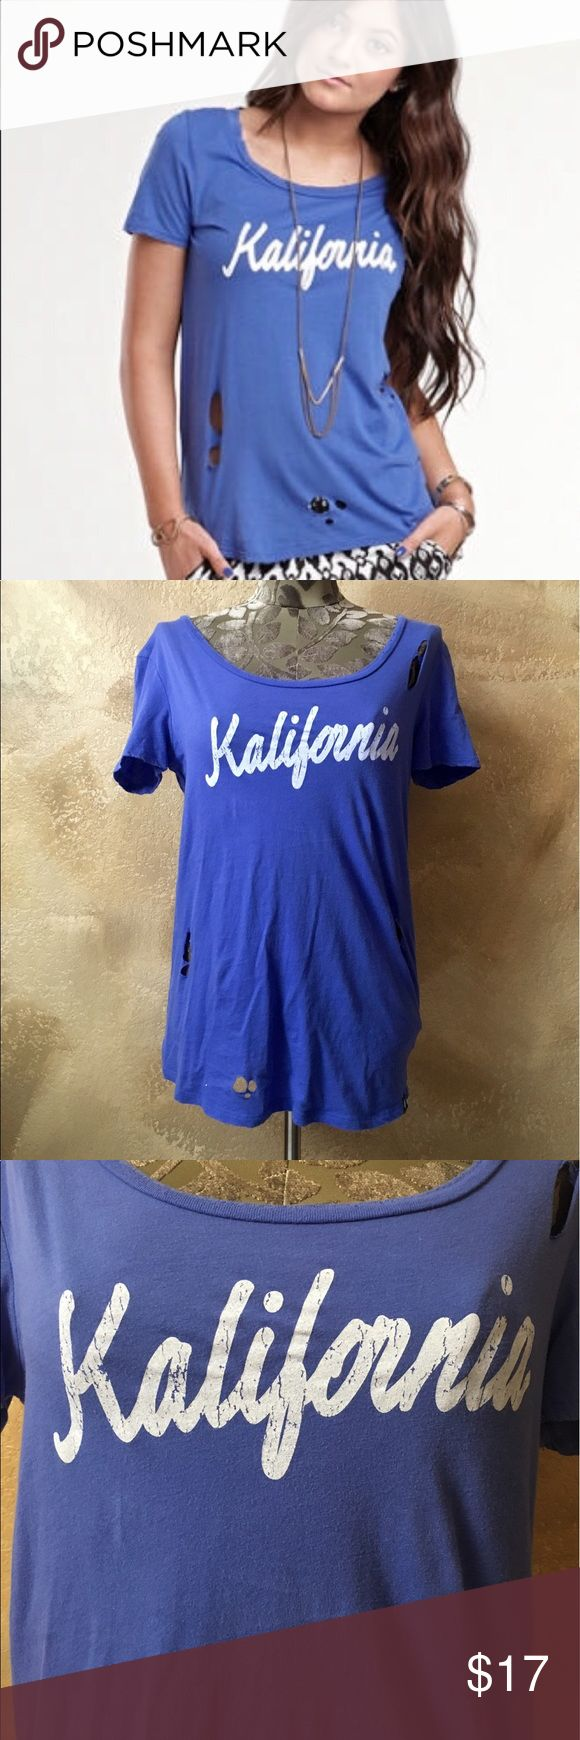 "Kendall & Kylie ""Kalifornia"" Blue Distressed Tee Kendall & Kylie ""Kalifornia"" Blue Distressed Logo Tee   Size: L - True to size  Measurements can be provided upon request 📝  Fabric Content 👗 100% Cotton   Features ✨ •Comfortable, soft, and stretchy  •Distressed holes throughout  •Distressed, scooped neckline + distressed sleeve hems •Cracked ""Kalifornia"" logo front •Blue heart tag on left hip  •Good Used Condition - some pilling throughout   Get 15% off when you buy 3+ items plus save on…"